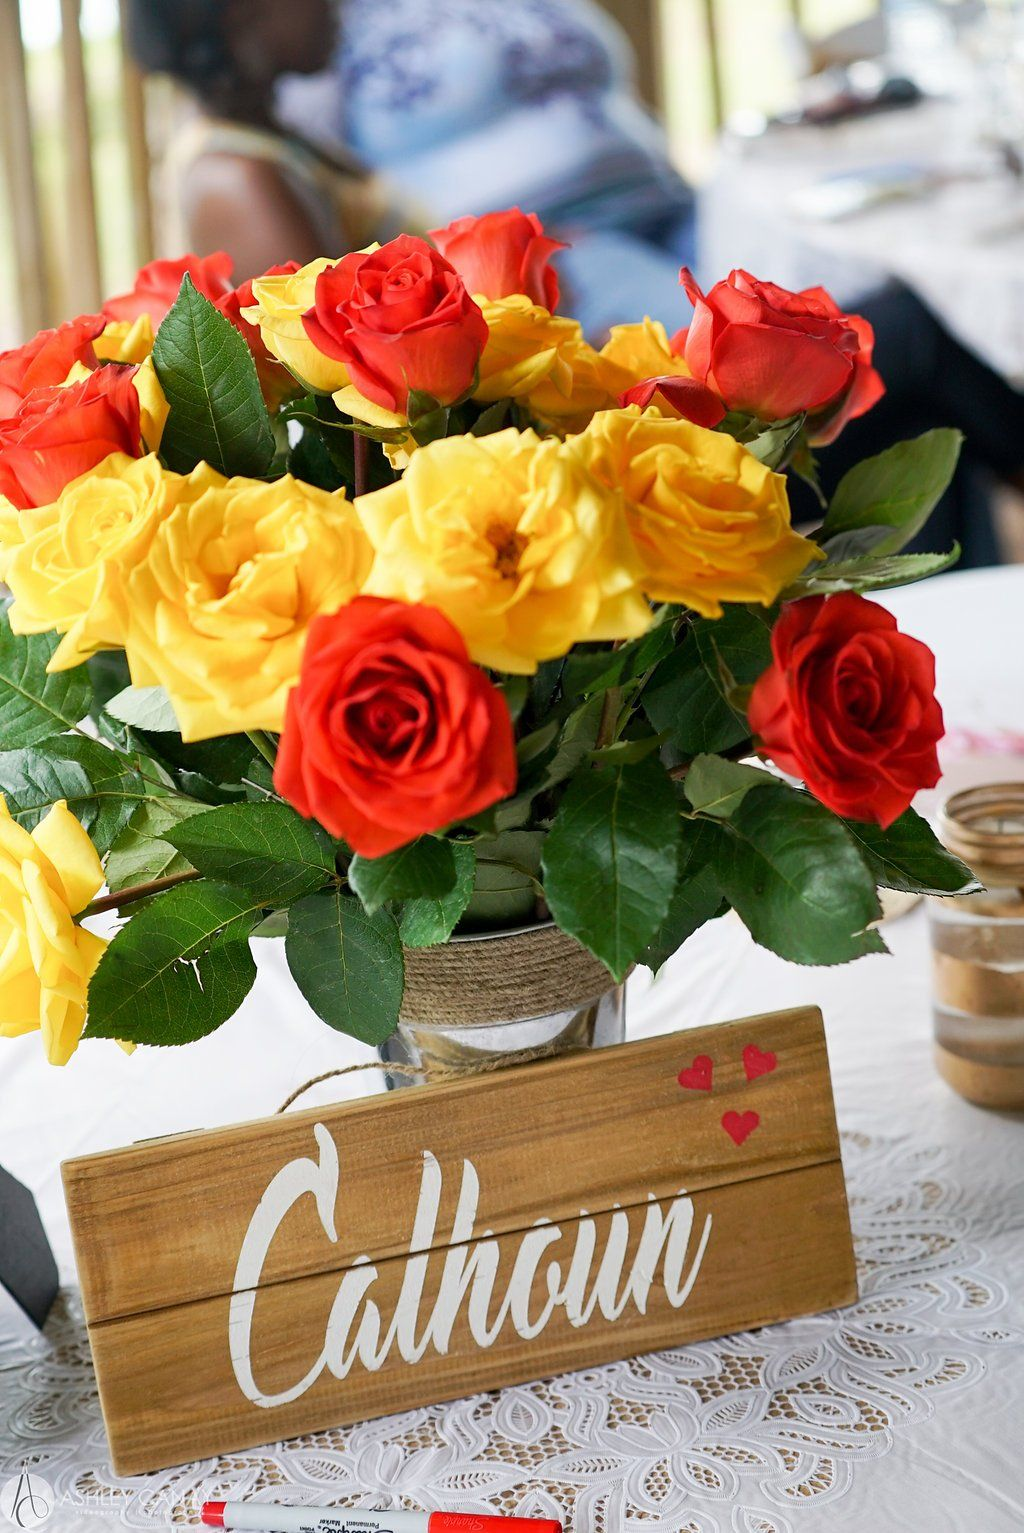 old mcmickys farm rustic barnyard bridal shower in tampa florida country styled centerpieces red and yellow roses wood sign